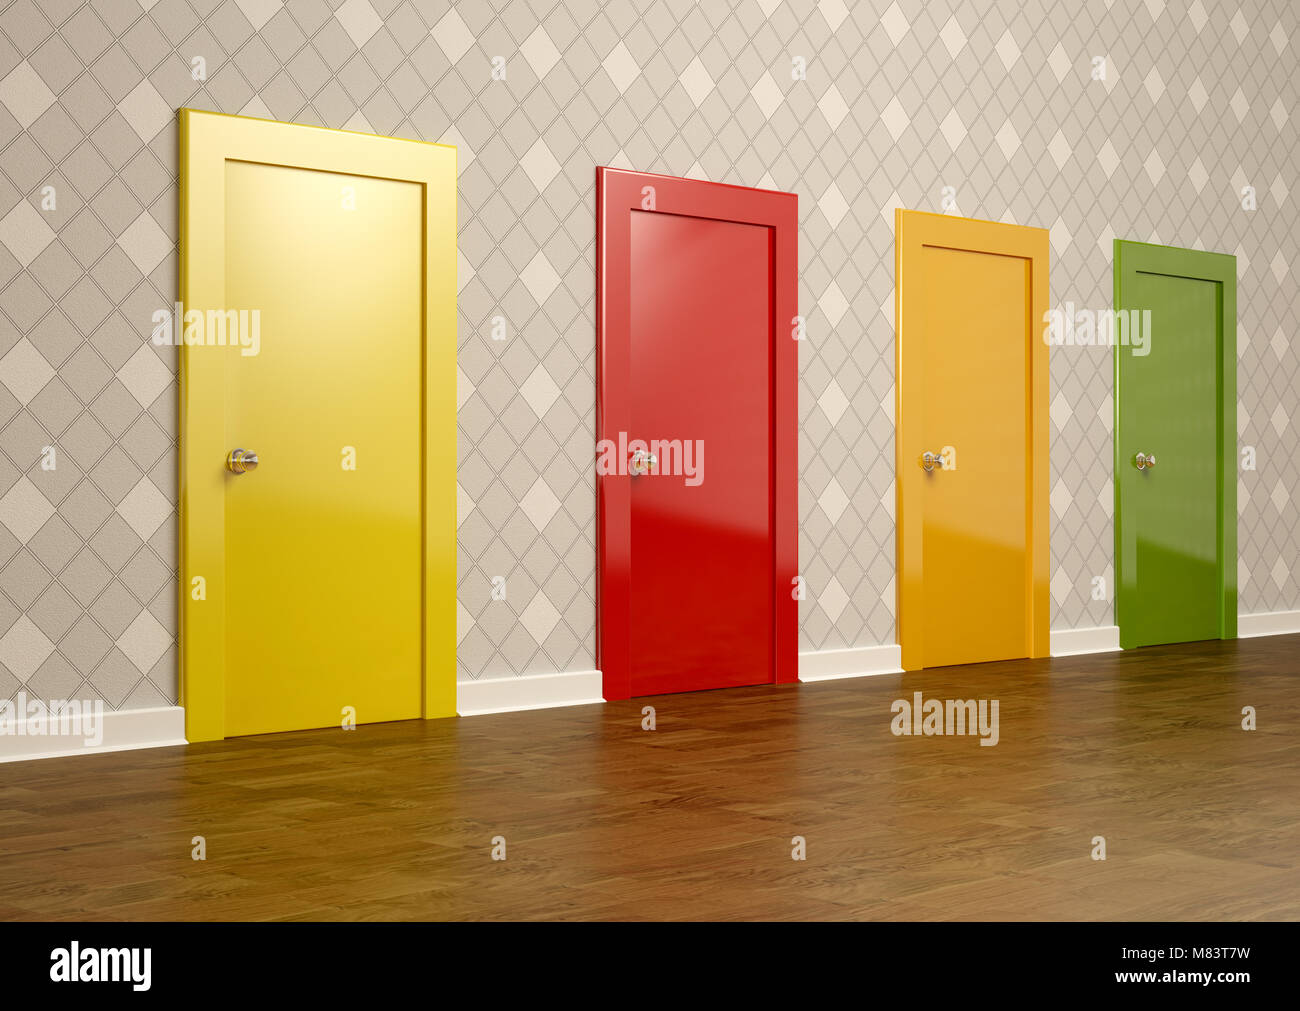 3D rendering of colored doors in a room representing the concept of choice - Stock Image